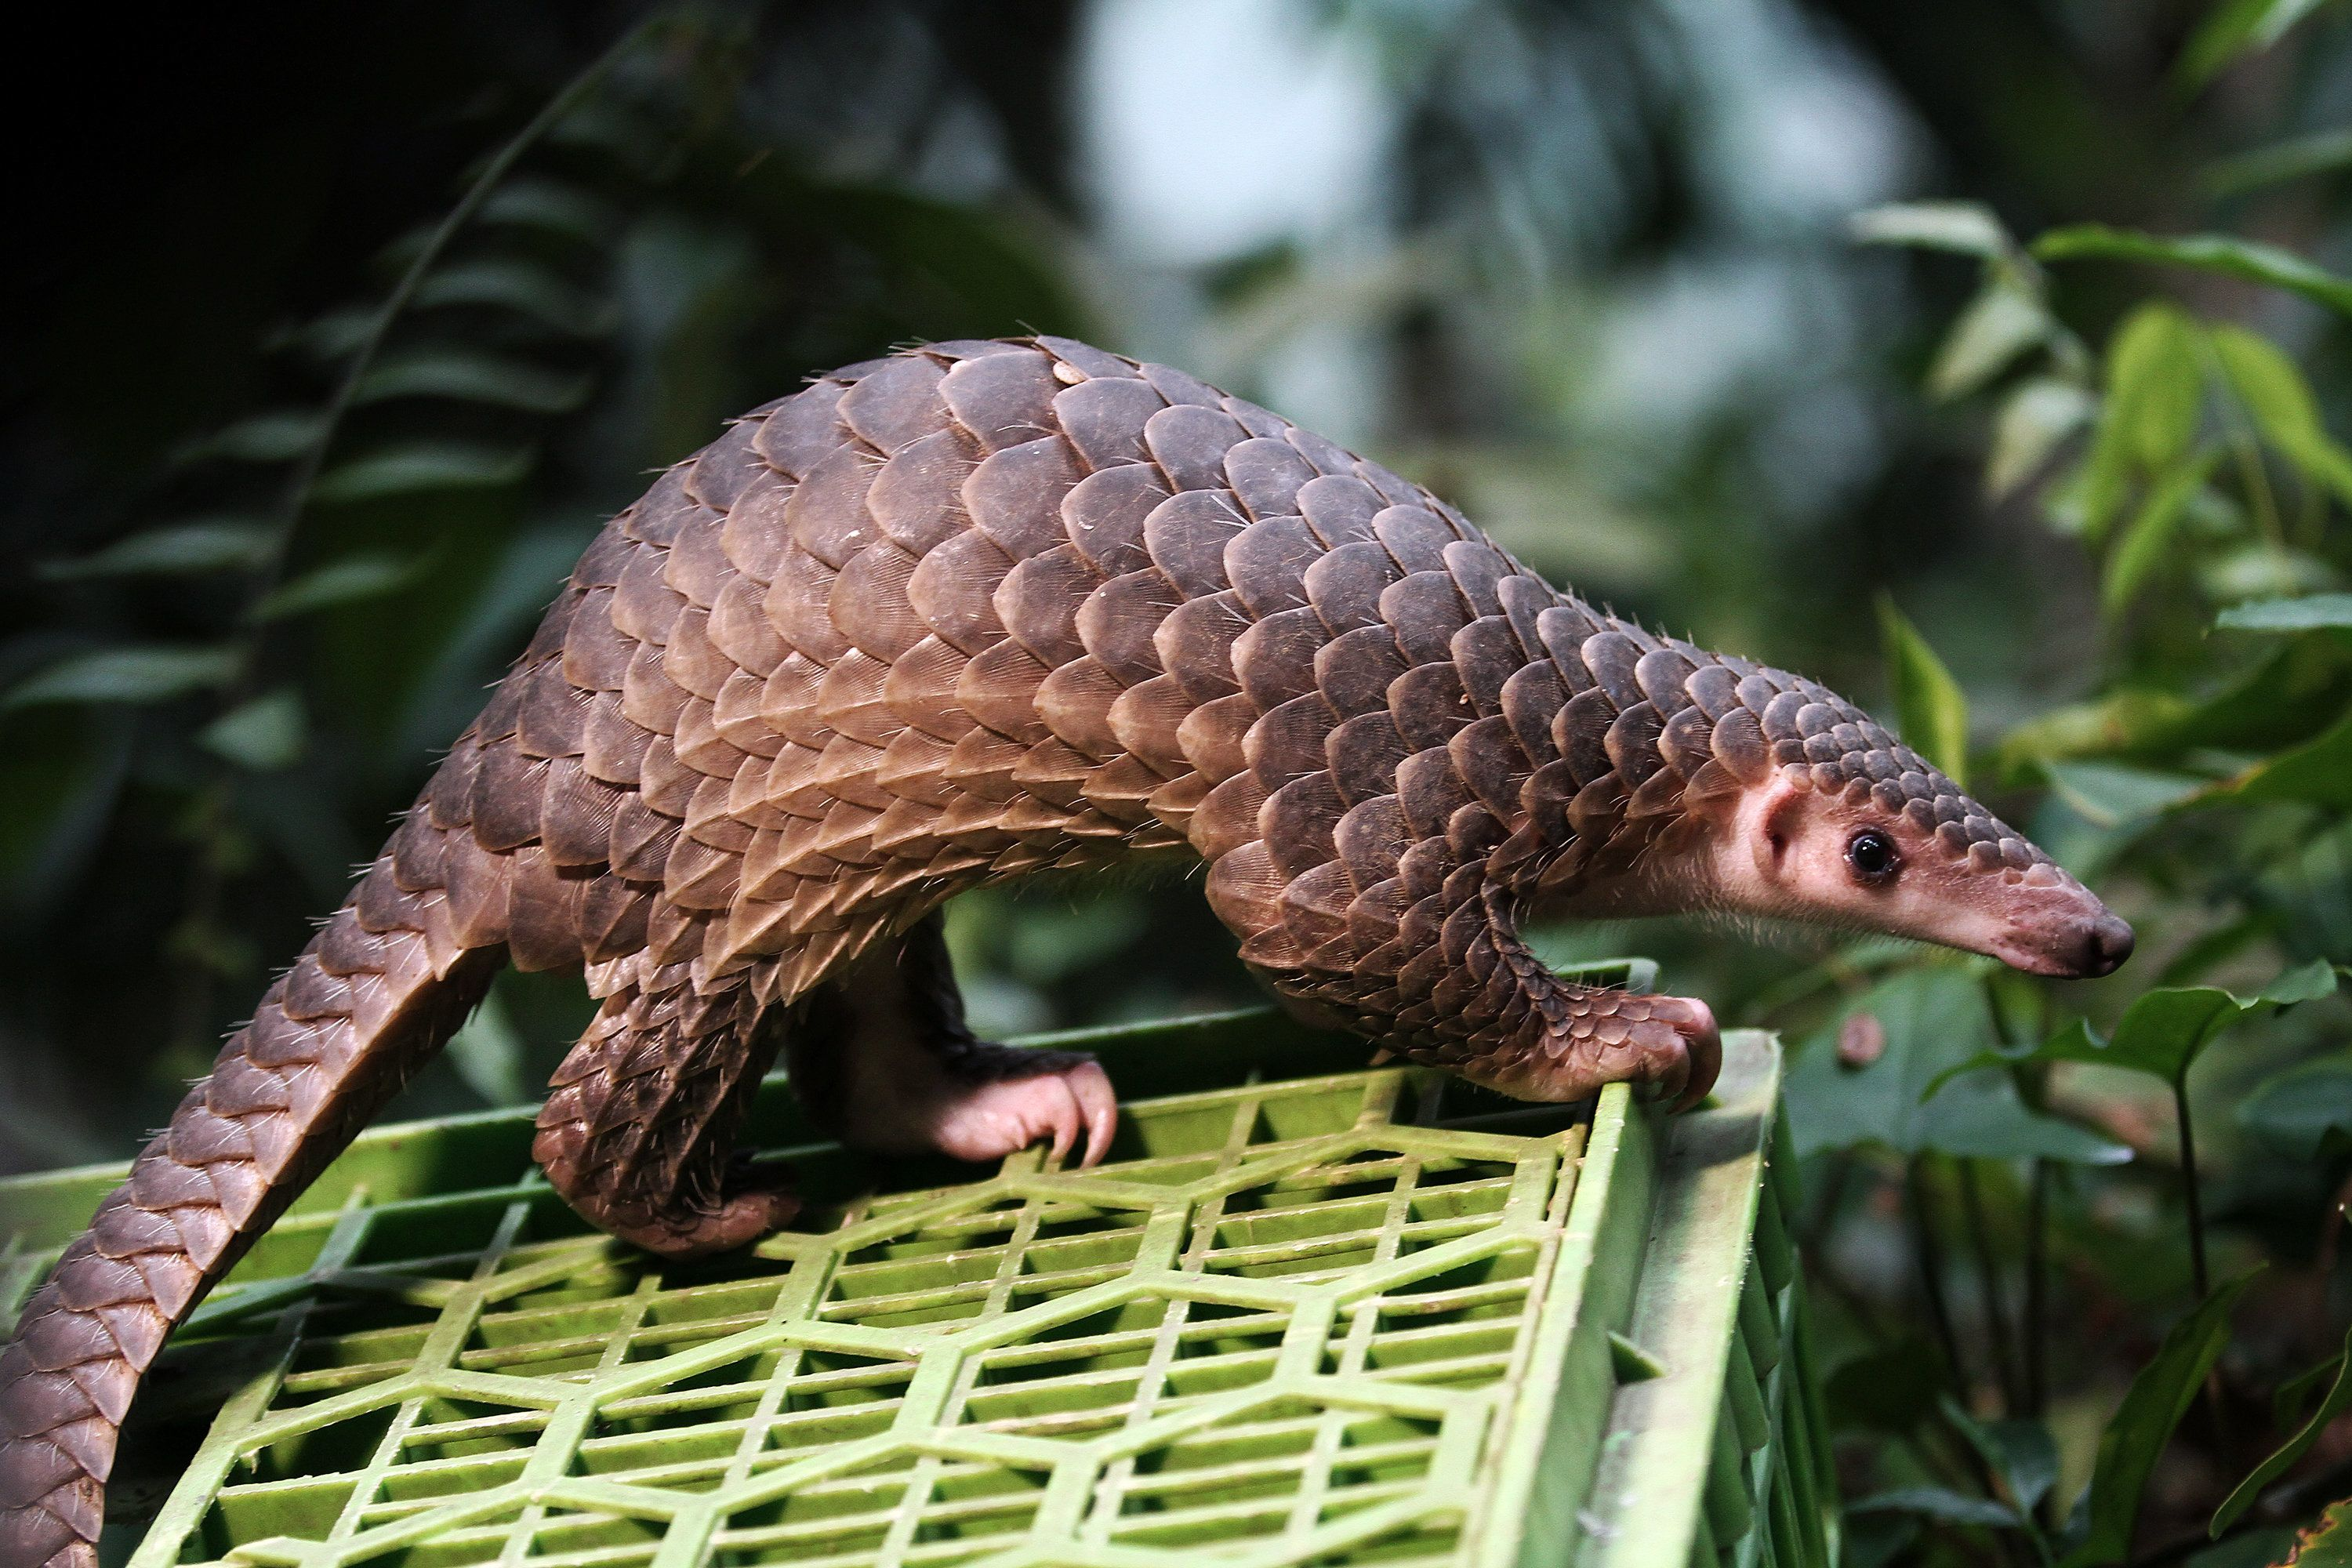 """Protected animals Pangolin released into the wild after seized from the illegal trade, in forest conservation in Sibolangit, North Sumatra, Indonesia, Monday, April 27, 2015. Indonesian police secure the pangolin, which is part of the evidence as much as 3,400 kilograms or 3 tons of pangolin which is skinned and packaged, along with one kilogram of pangolin scales in 3000 US dollars which is used for the purposes of pelanging body, lanterns and material manufacture of methamphetamine, and 93 live pangolins were reintroduced tail. pangolin smugglers who are protected animals in Government Regulation No. 7/1999 about Preservation of Plants and Animals. """"Pangolin trade most rampant in various places. The Chinese believe the animal could cure various diseases with losses to the state reached 18, 4 billion Rupiah or 1,307,736 euro"""". State police officials sa (Photo by NurPhoto/NurPhoto via Getty Images)"""